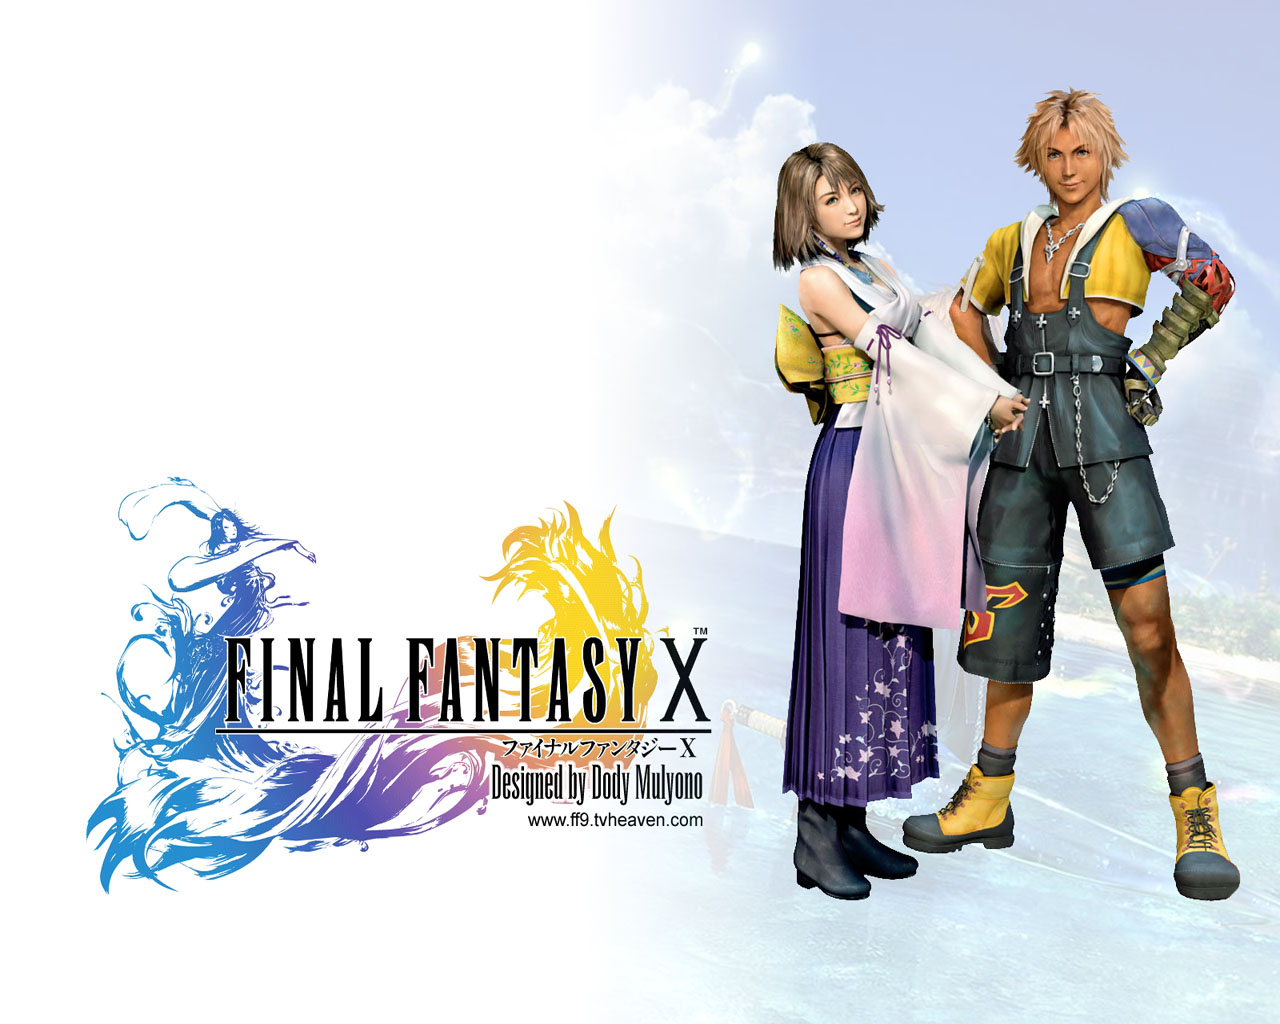 ffx-character-logo